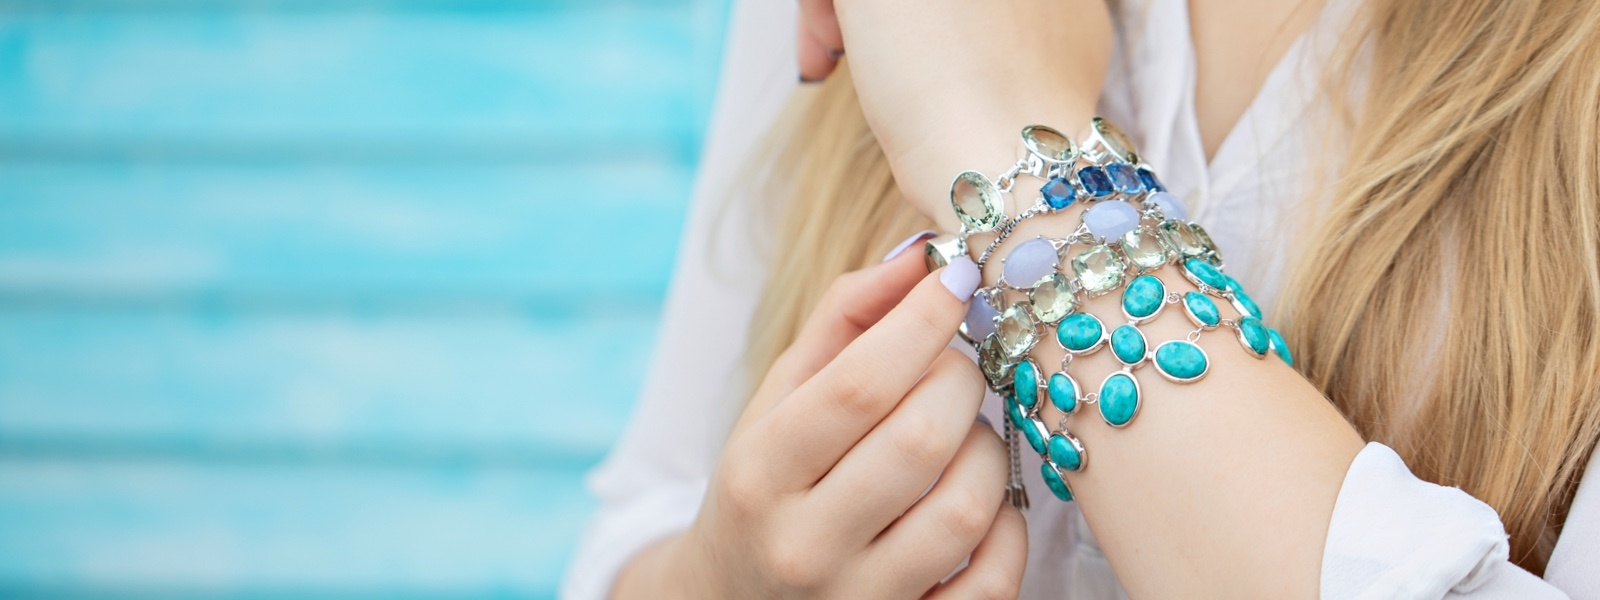 Top Rated Jewelry